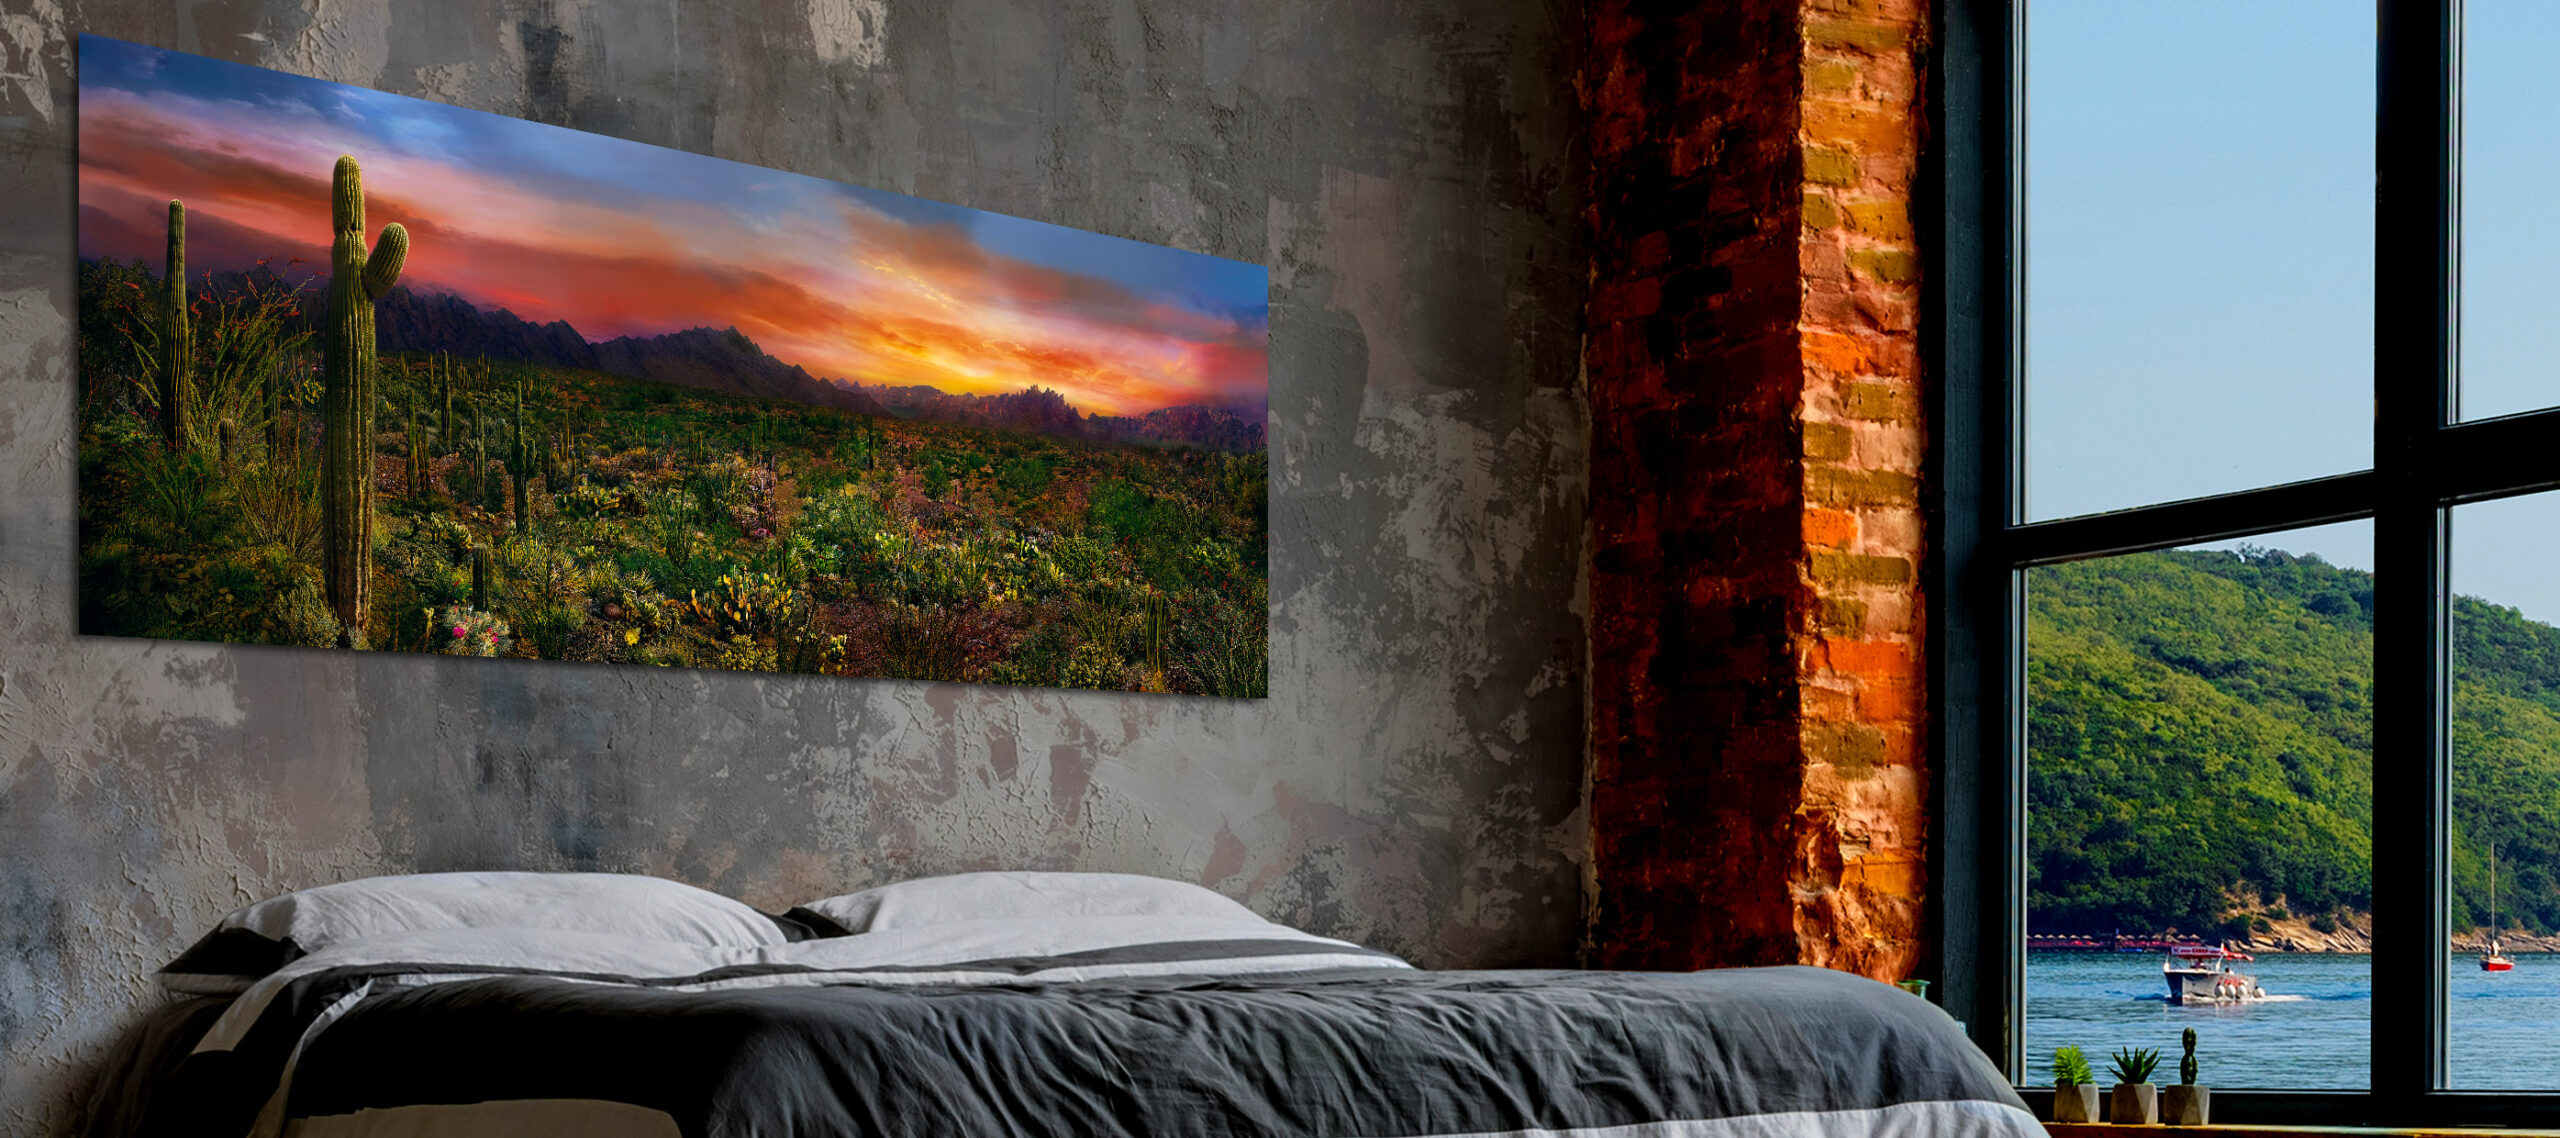 Large,Loft,Interior,With,Bed,And,Sea,And,Mountains,In